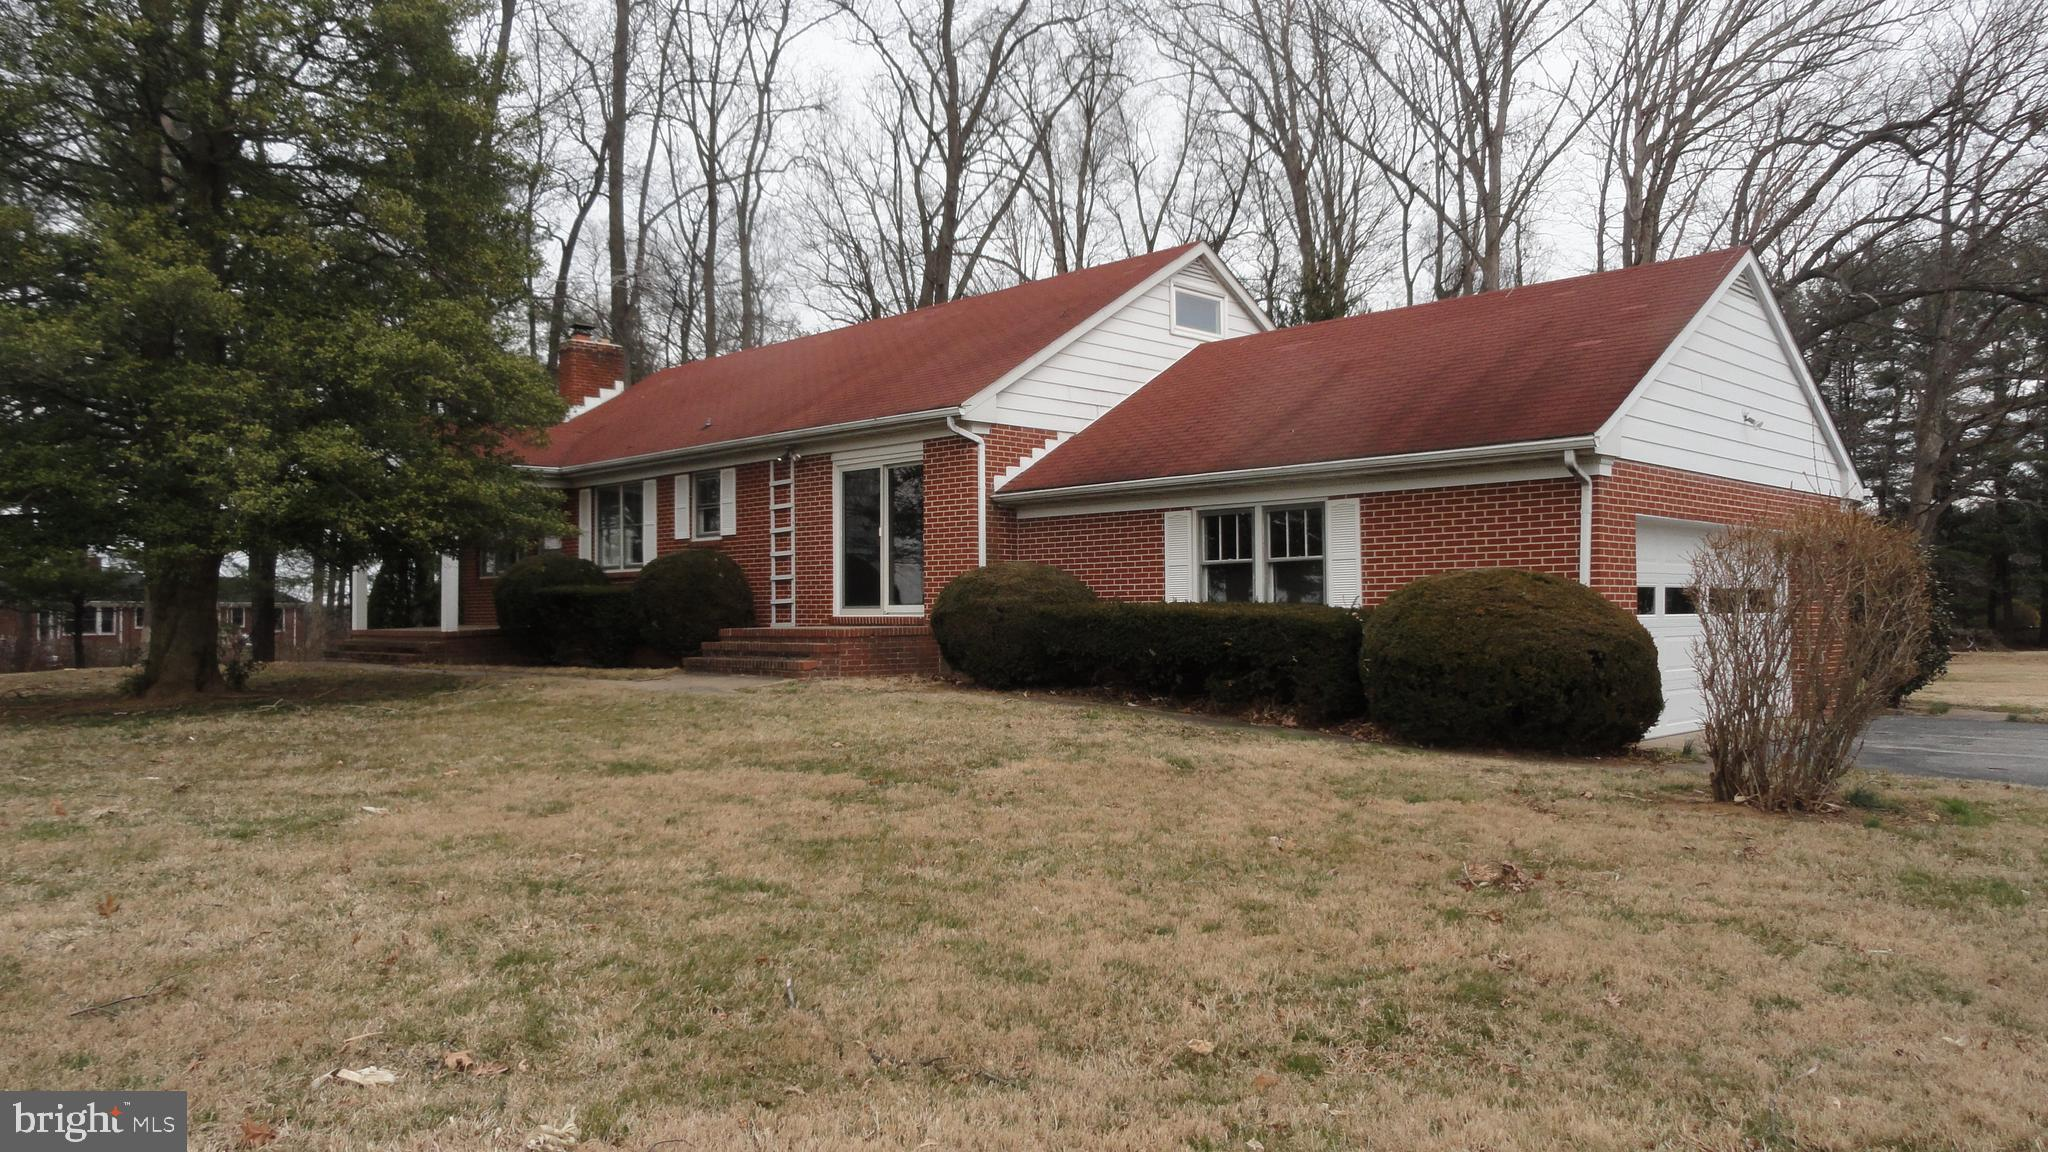 """This All Brick Rancher sits on a very nice 2.5 Acre Lot just north of Reisterstown/Glyndon.  Spacious home with 2045 sq. ft of living space on the main level.  The partial finished basement has a 2nd kitchen, rec room and family room area, plus storage area.  There are 2 bedroom on the main level and 2 bedroom on the upper level.  This property need updating.  The property is livable.  The property would be great for someone getting an FHA 203K rehab loan.  Investors are welcome. """"Property is being Sold As Is""""."""